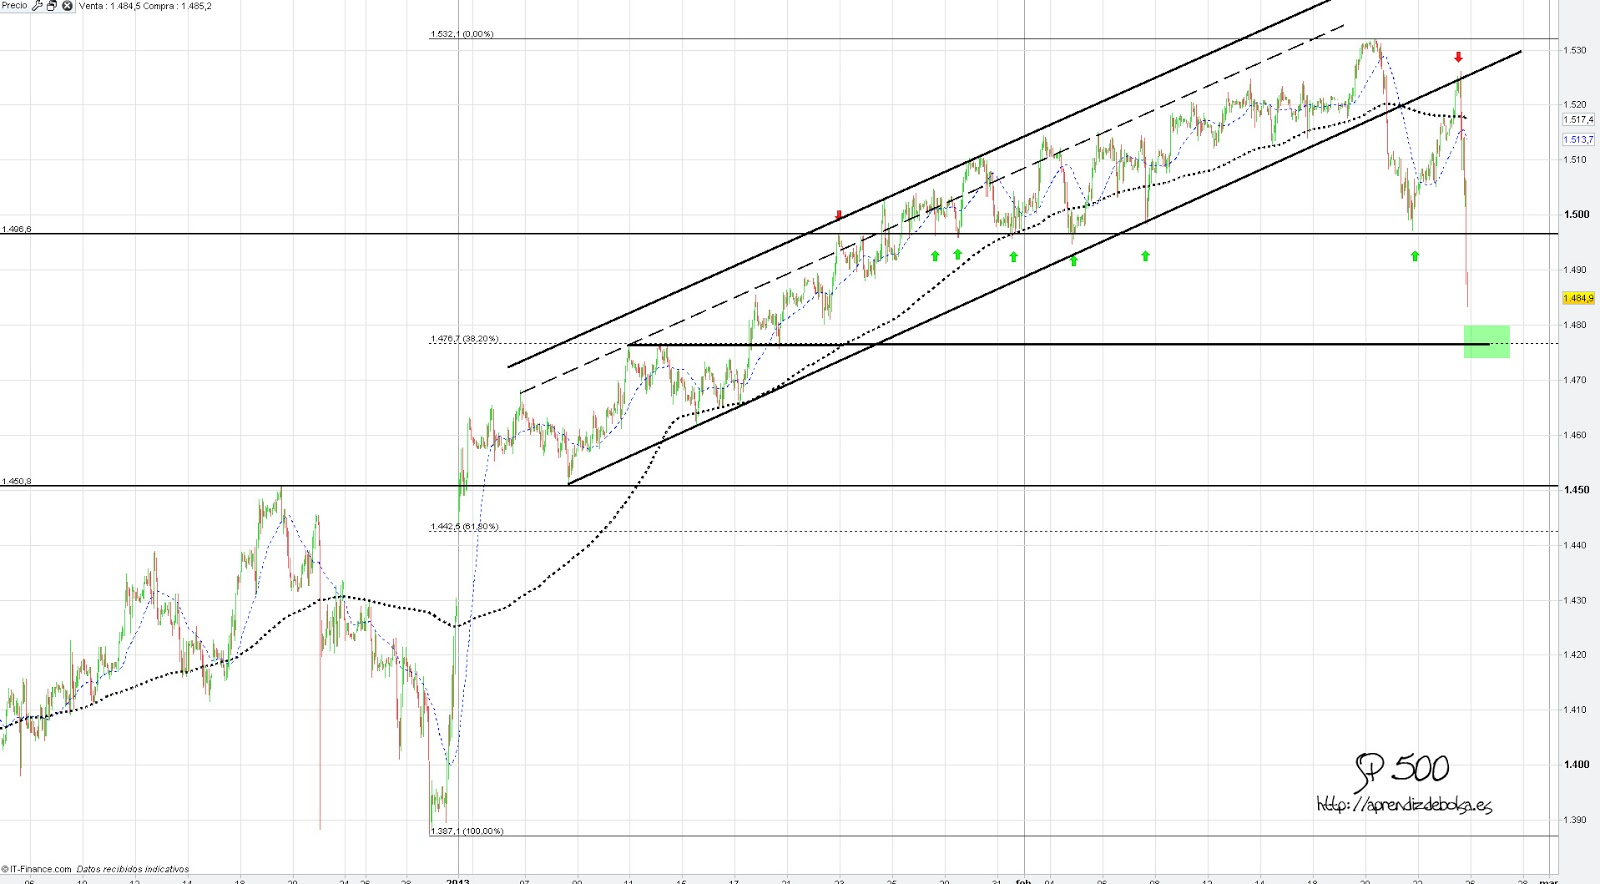 Sp500 real forexpros